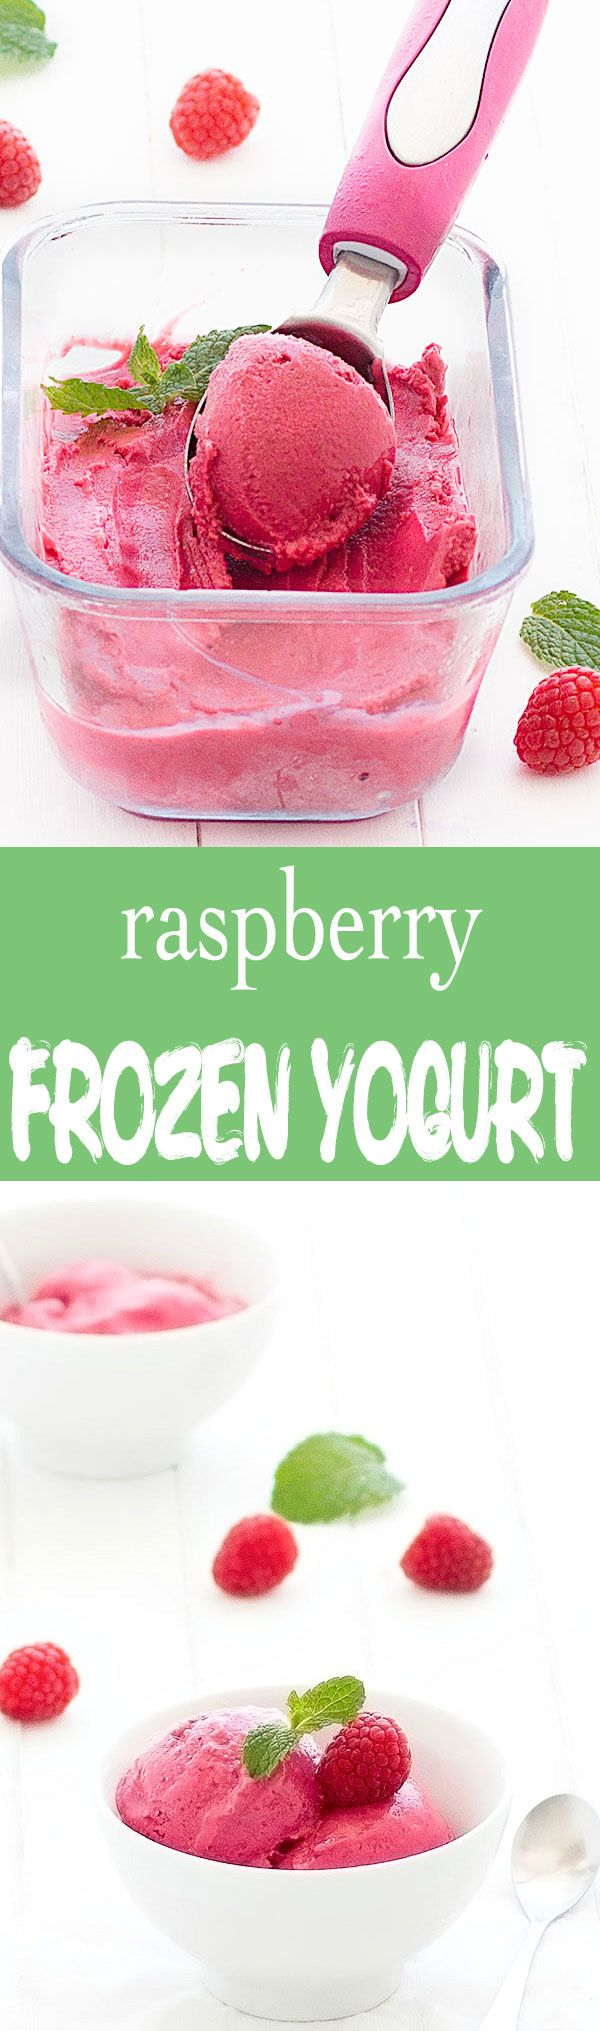 You only need 3 ingredients to create this healthy raspberry frozen yogurt. It's the perfect summer dessert: refreshing, smooth, creamy, delicious, and bursting with raspberry flavor! With only 140 calories per serving, you can enjoy this scrumptious frozen treat without having to feel guilty about it.